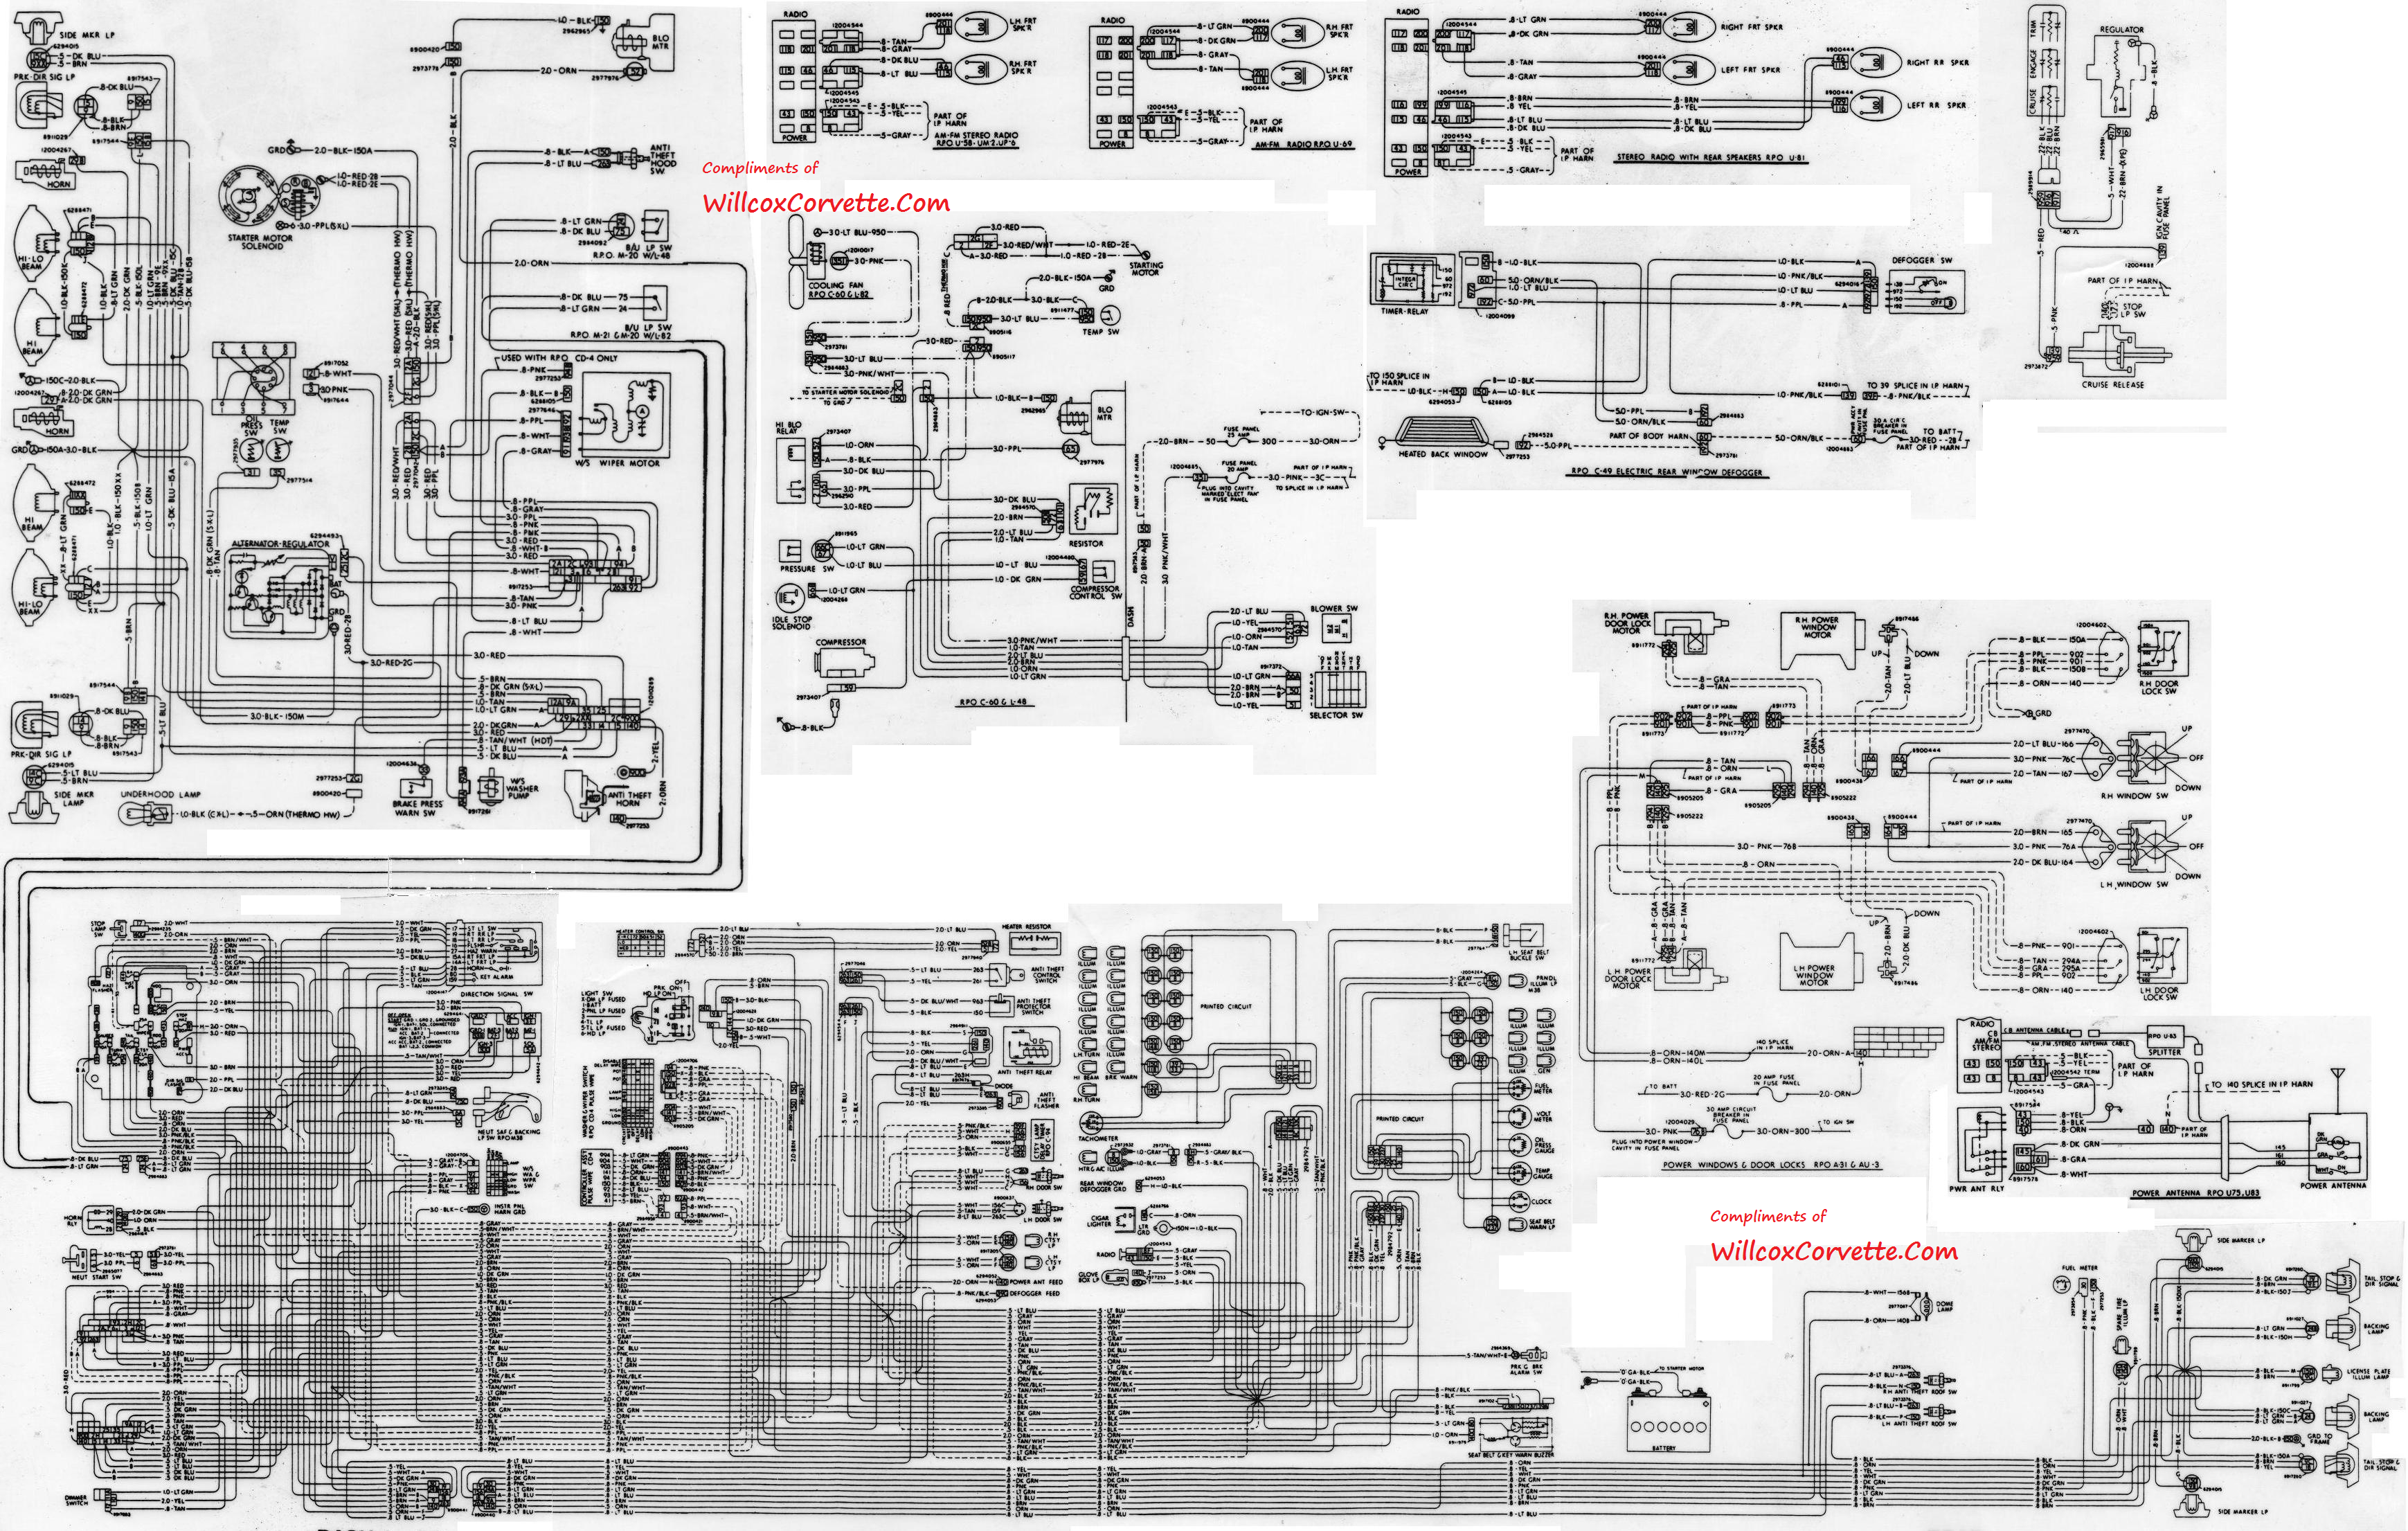 79 COMBINED TRACER SCHEMATIC c3 corvette wiring diagram radio wiring diagram \u2022 wiring diagrams Headlight Relay Harness Schematic at gsmx.co